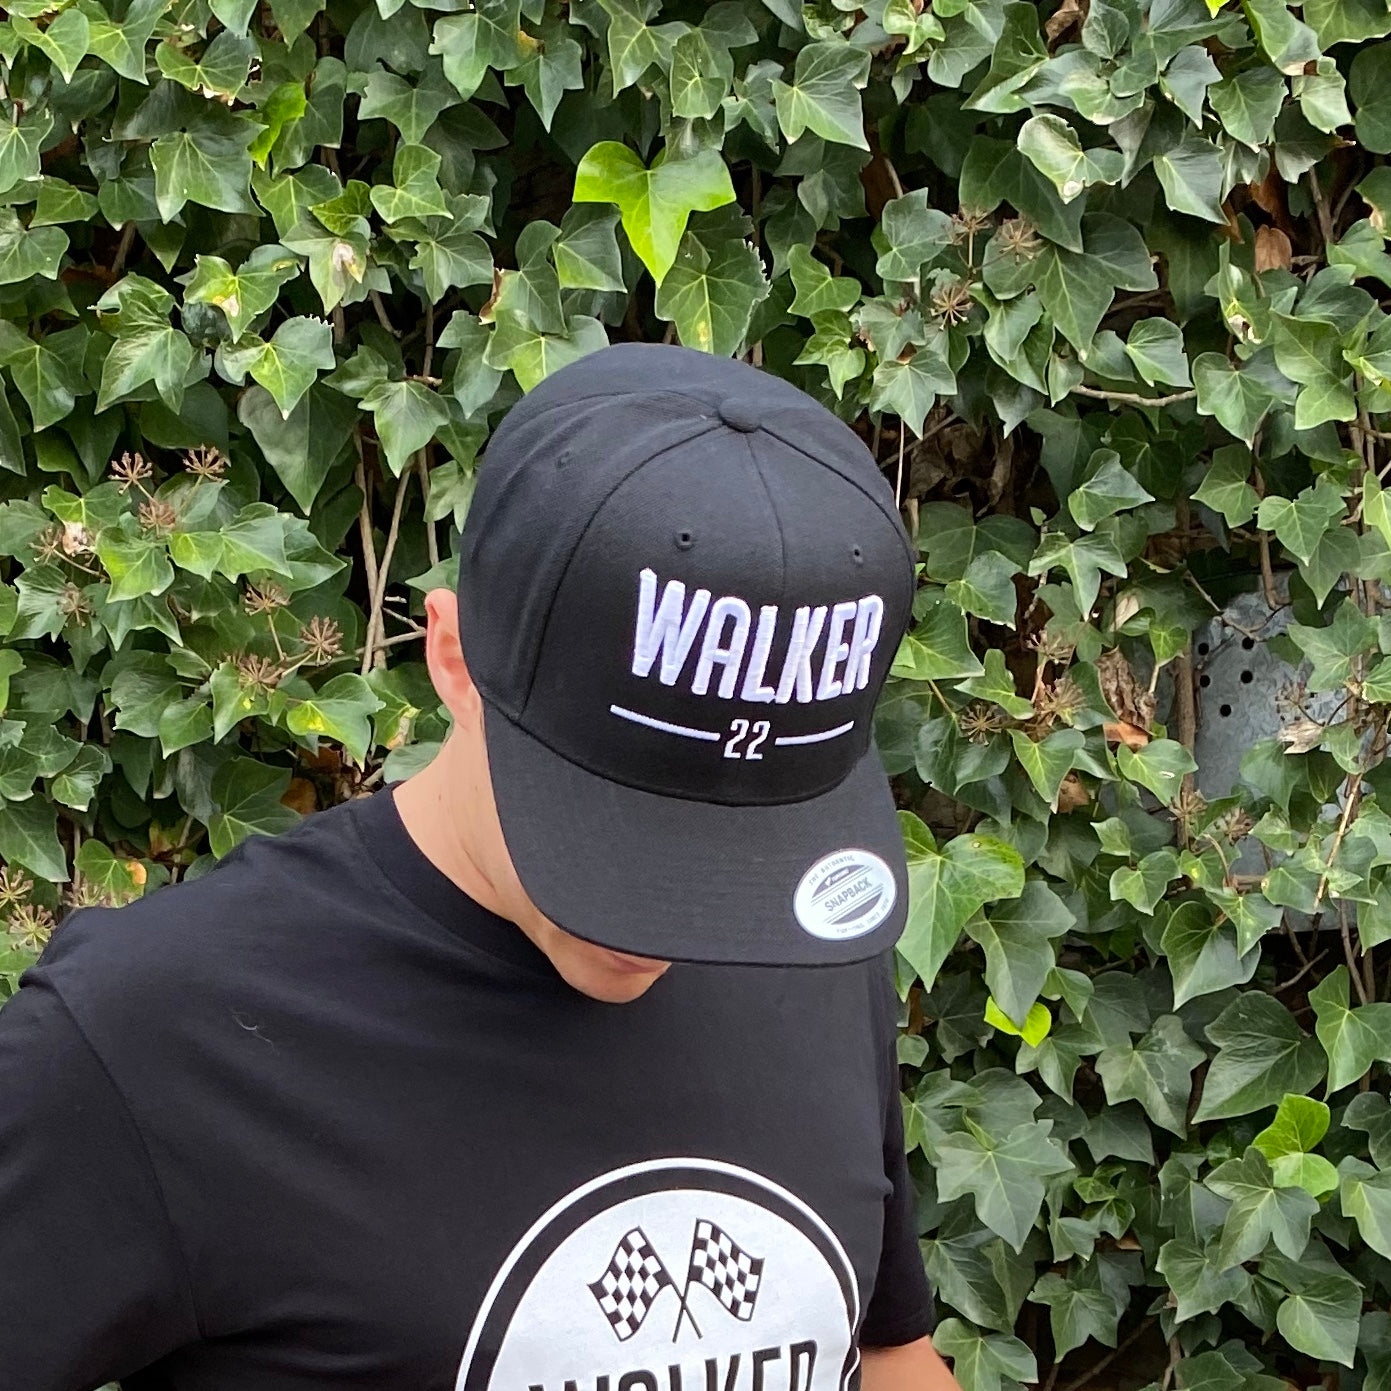 WALKER22 Black Flatpeak Cap